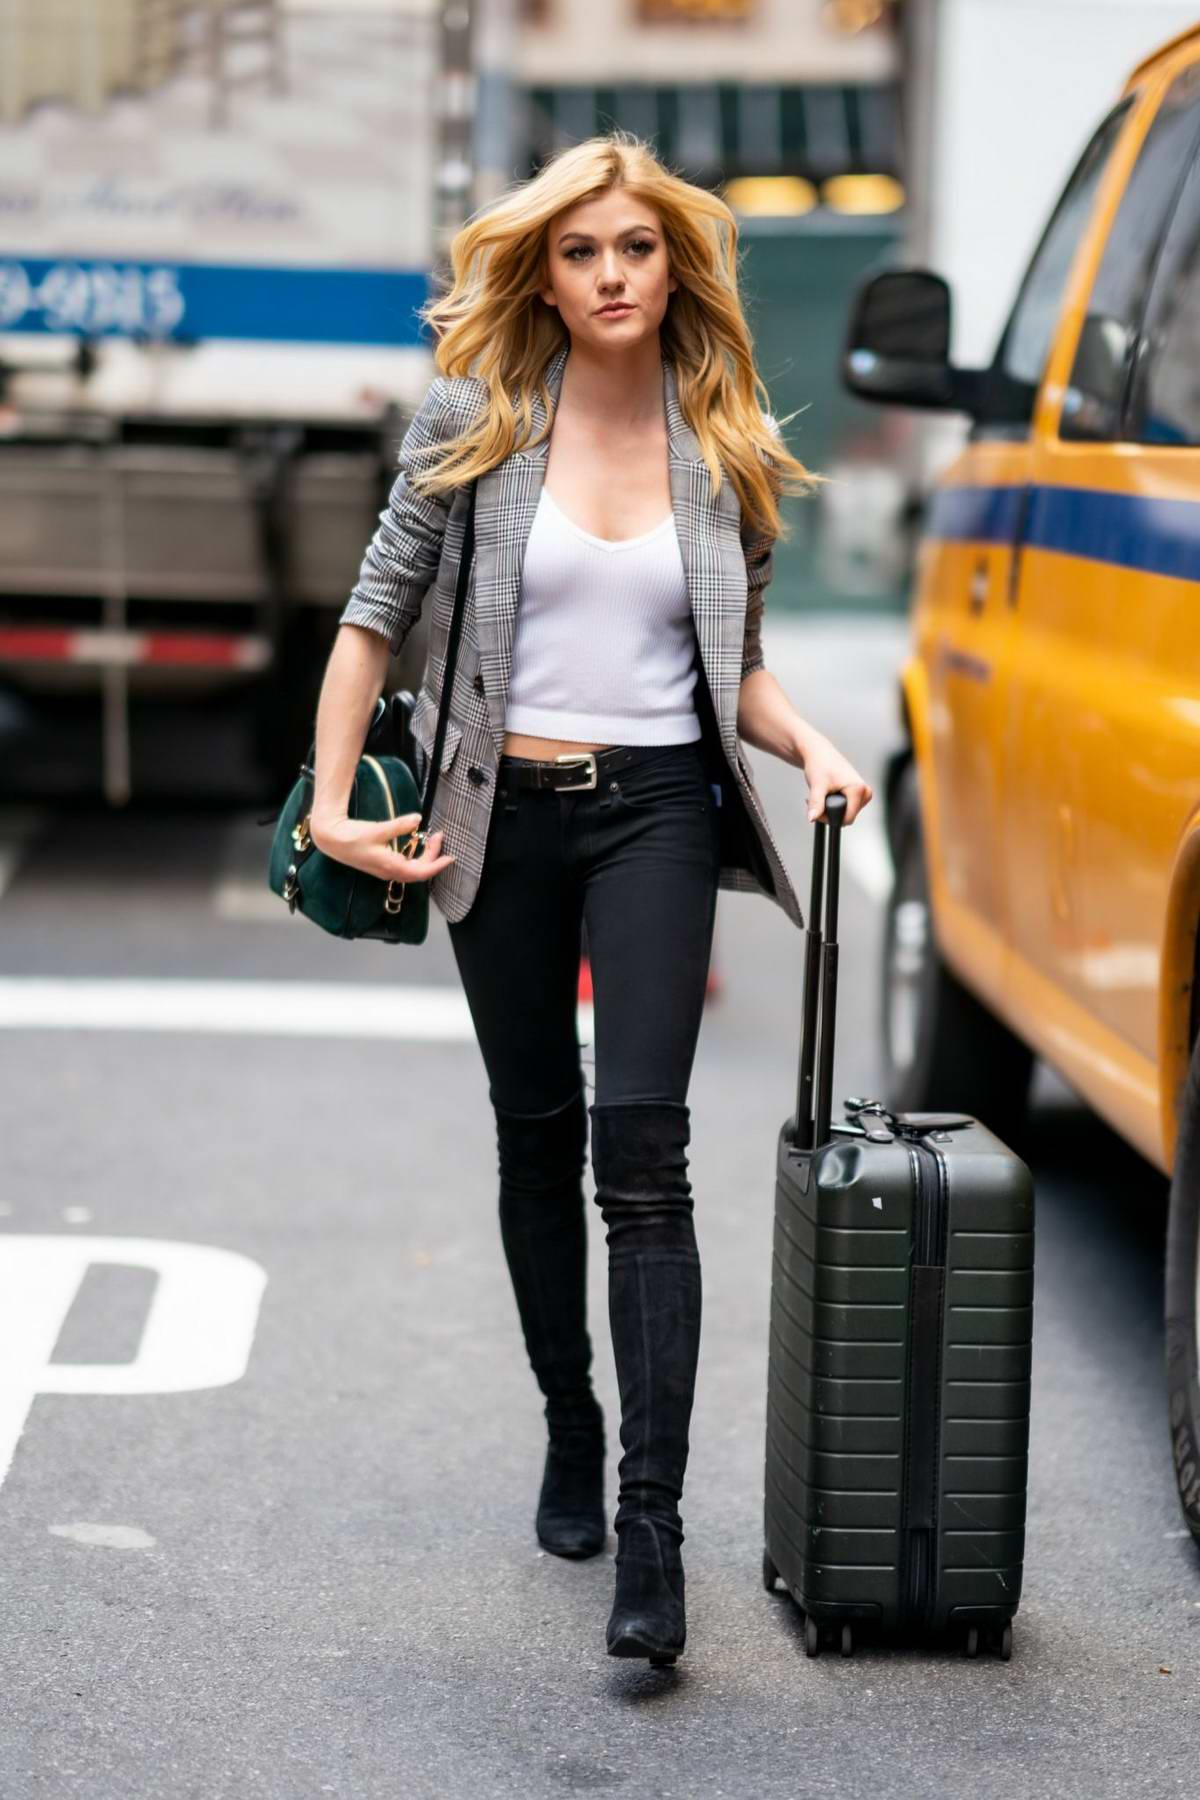 Katherine McNamara looks chic while out with a suitcase in Midtown, New York City